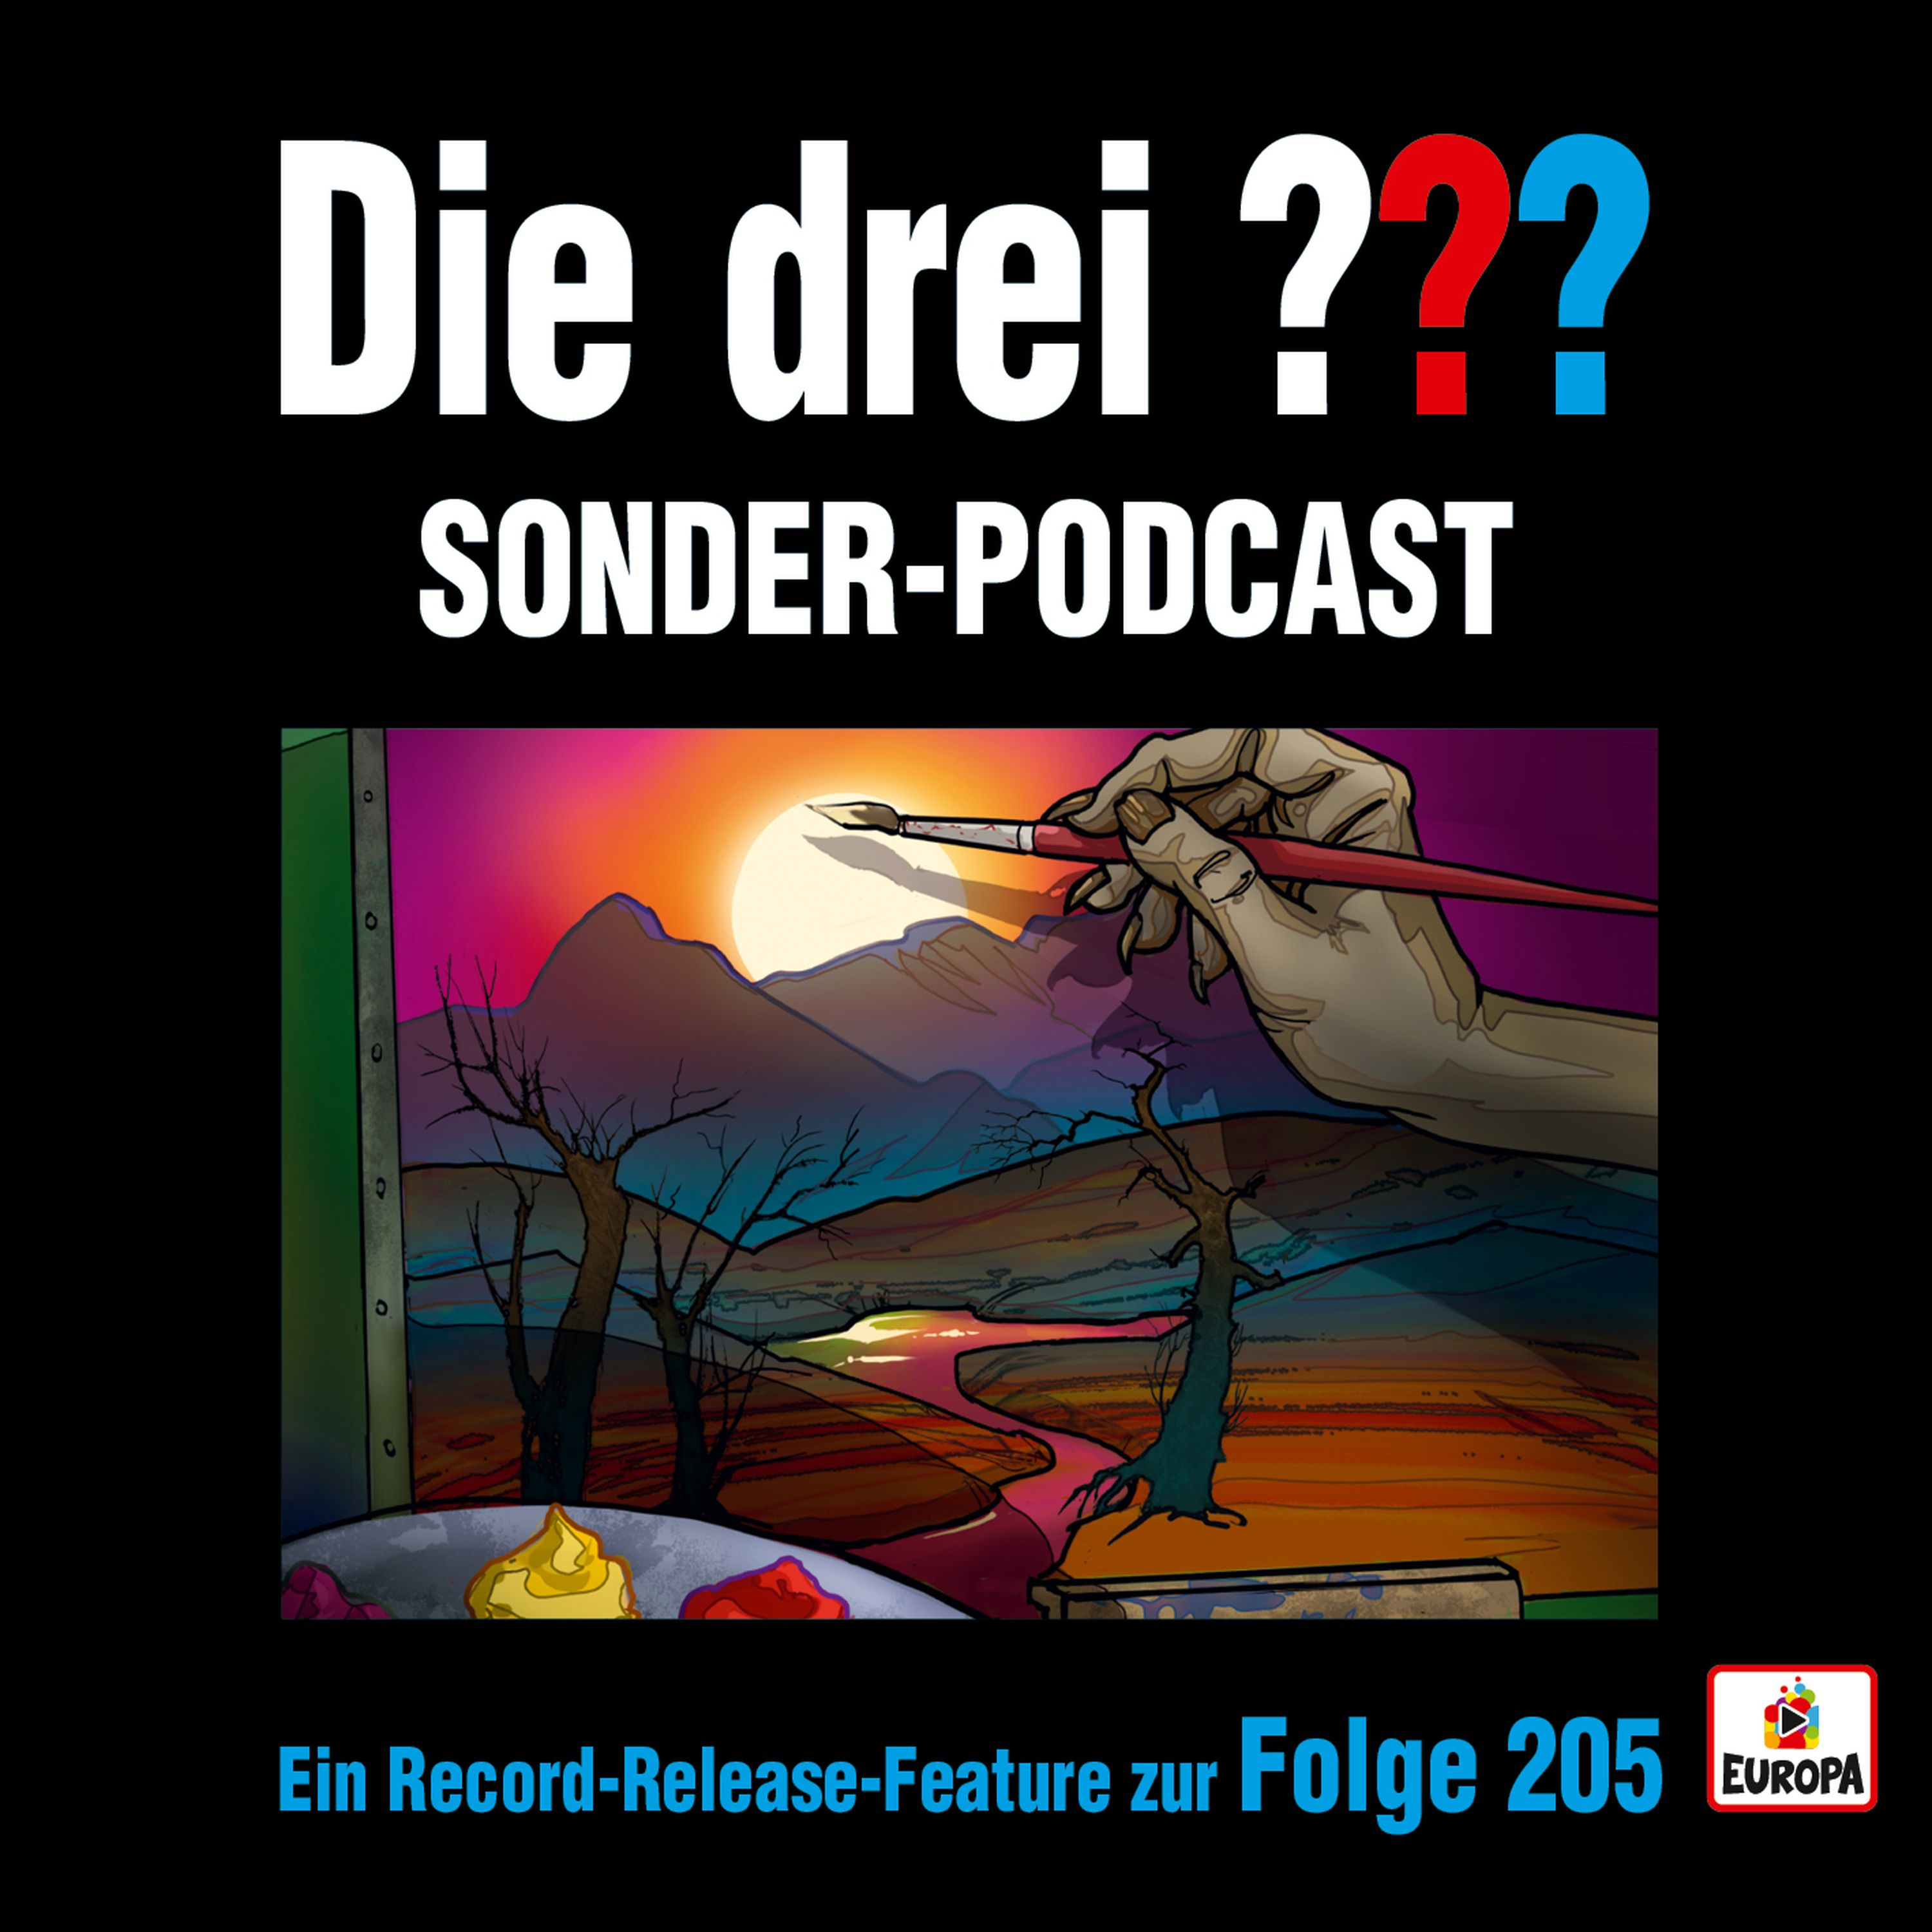 Record-Release-Feature zur Folge 205